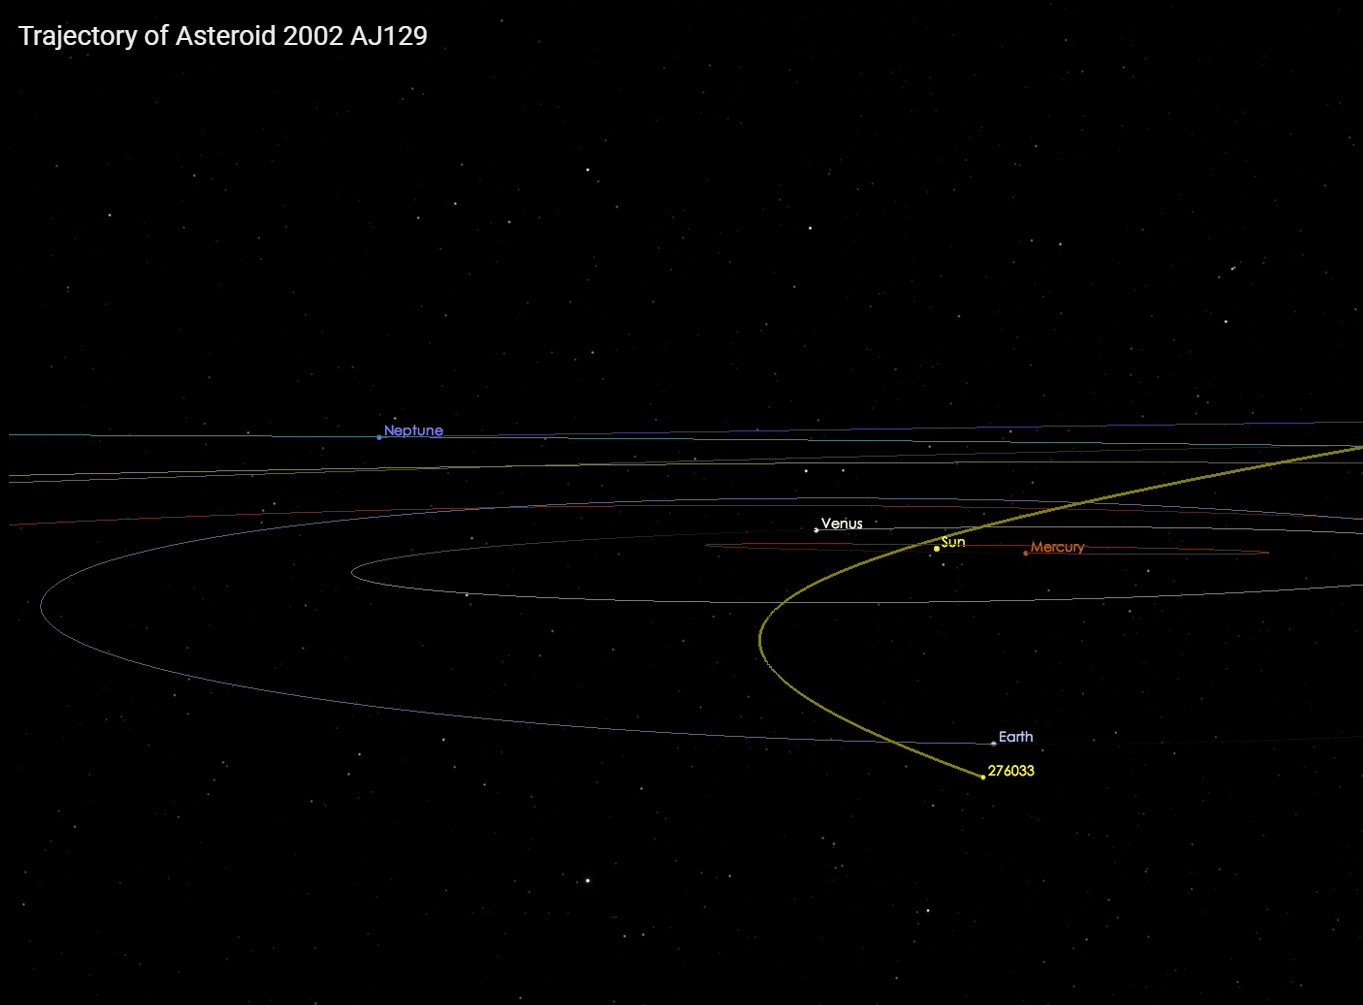 In case you're worried about this half-mile long asteroid, it's going to miss us:  https://t.co/heJtMyISaw https://t.co/4H5Fki8xy3